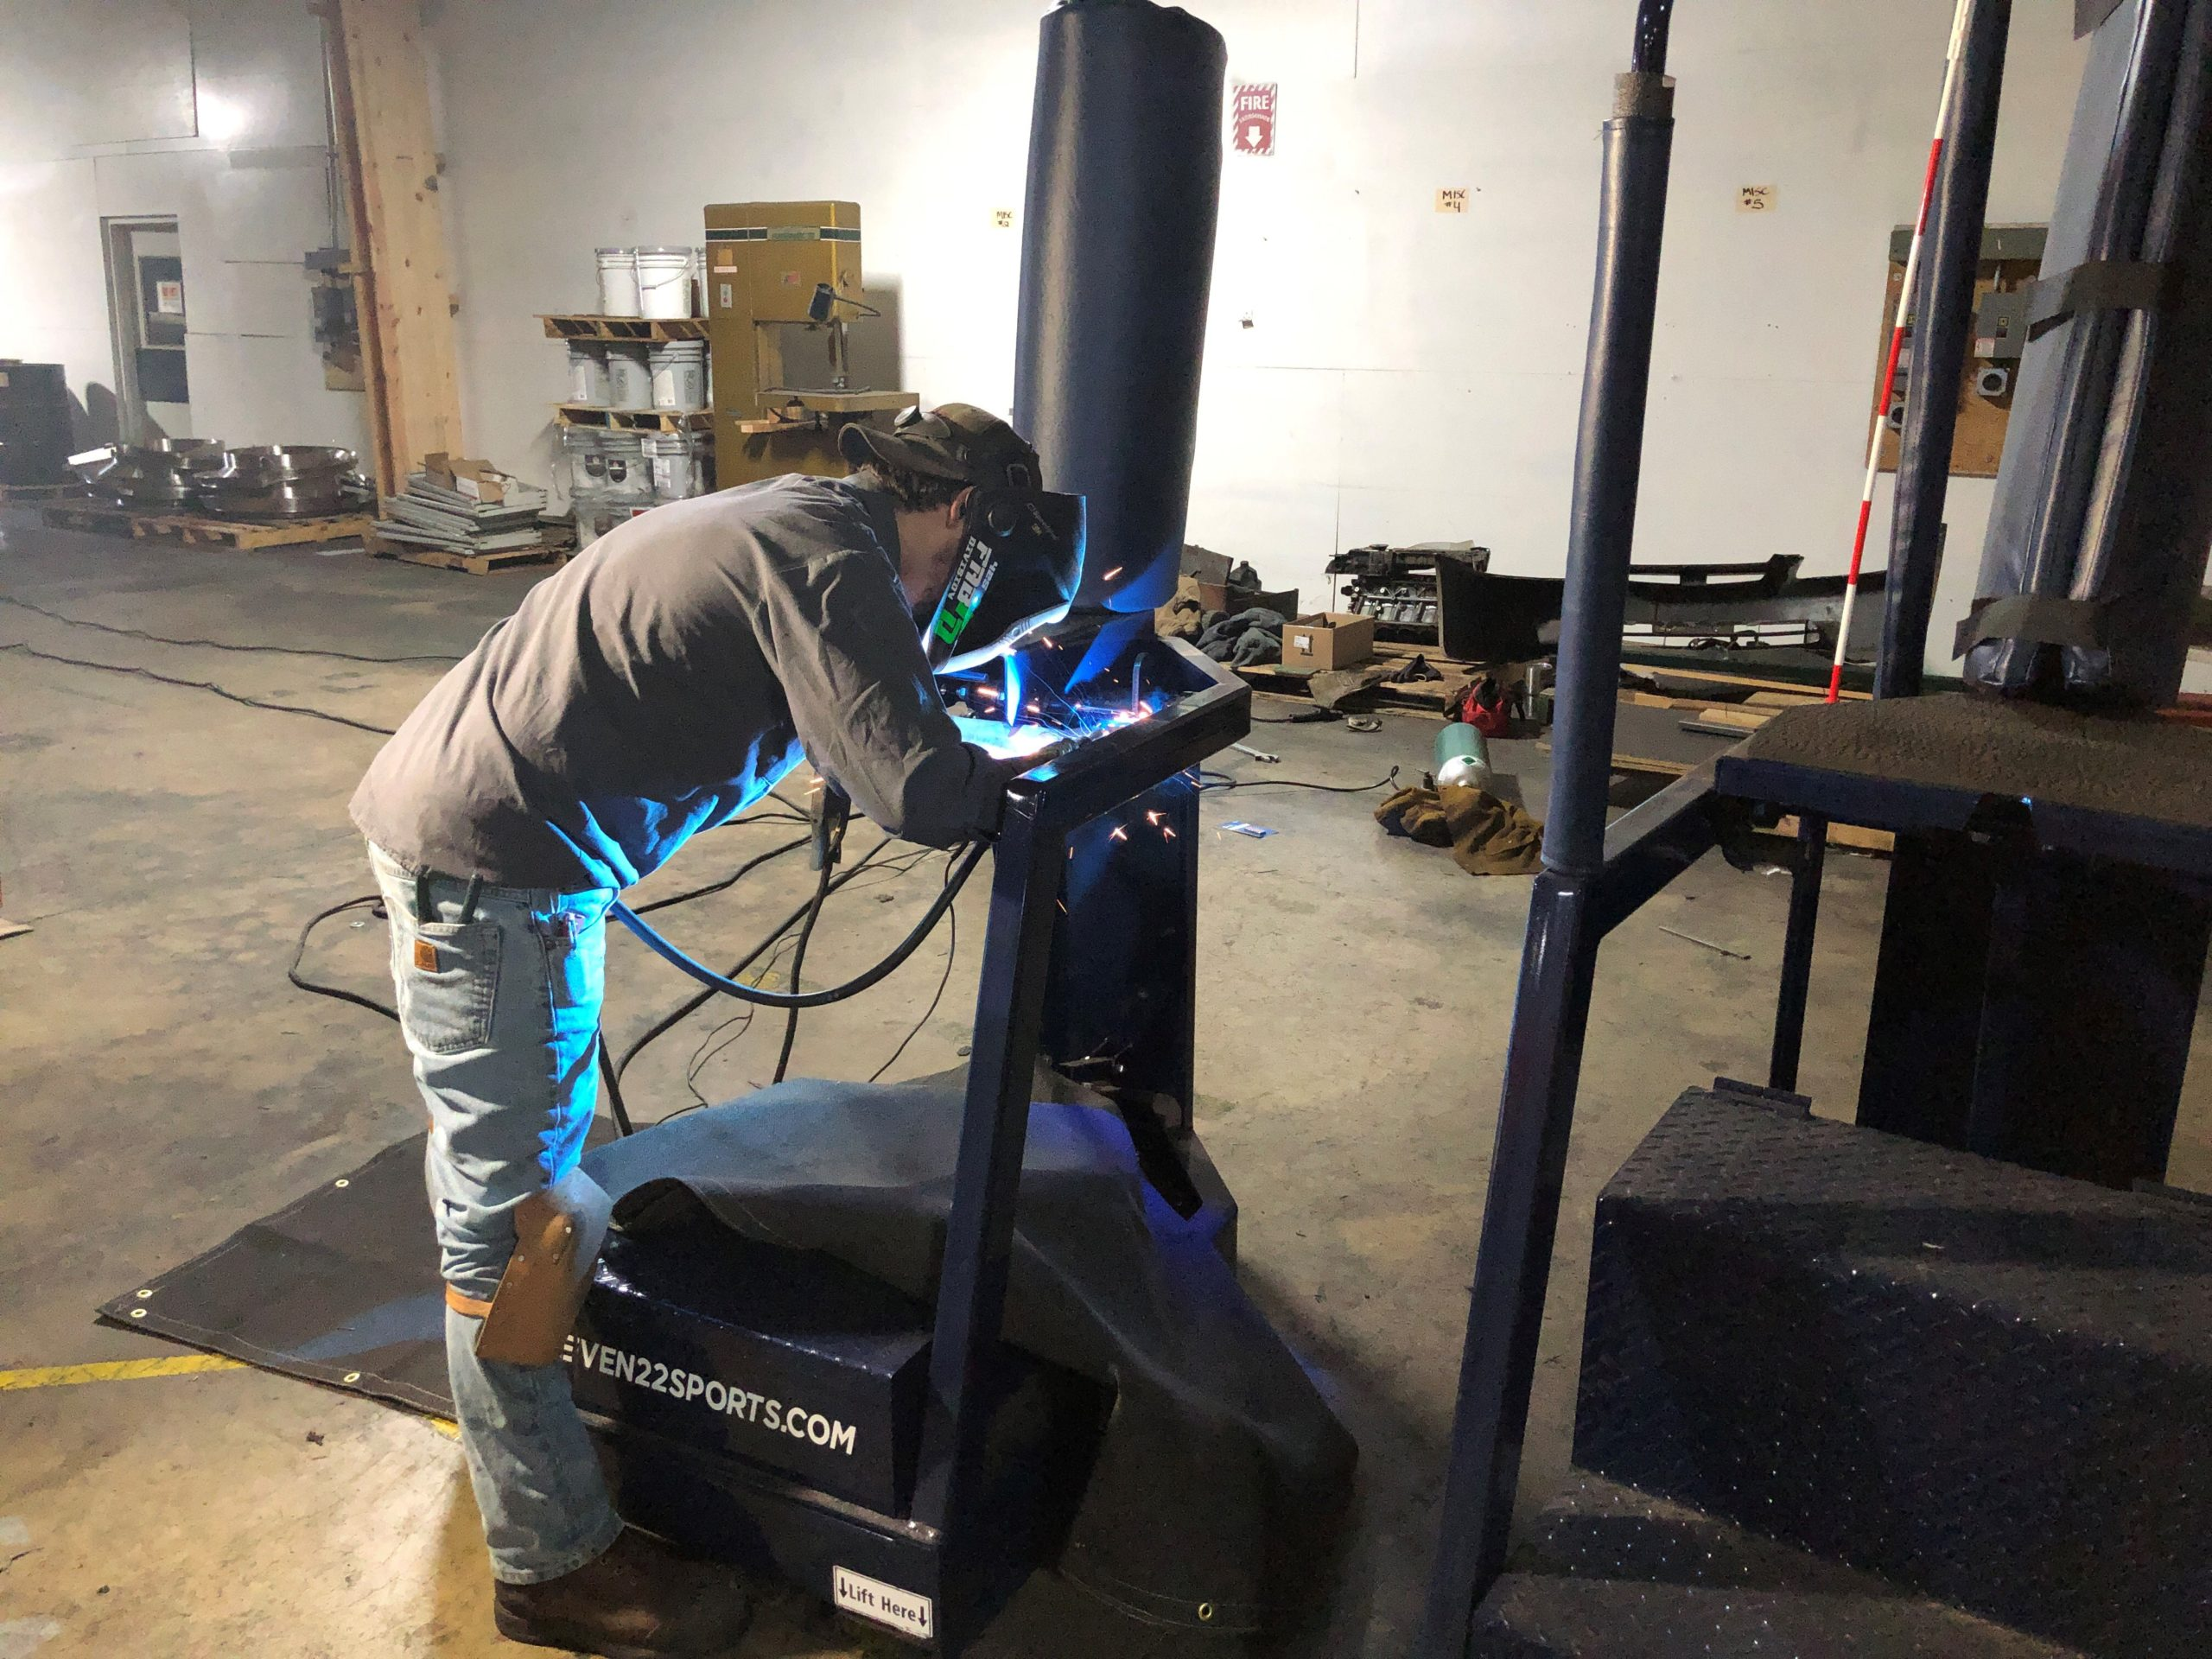 Mobile welding repair for Volleyball Stands